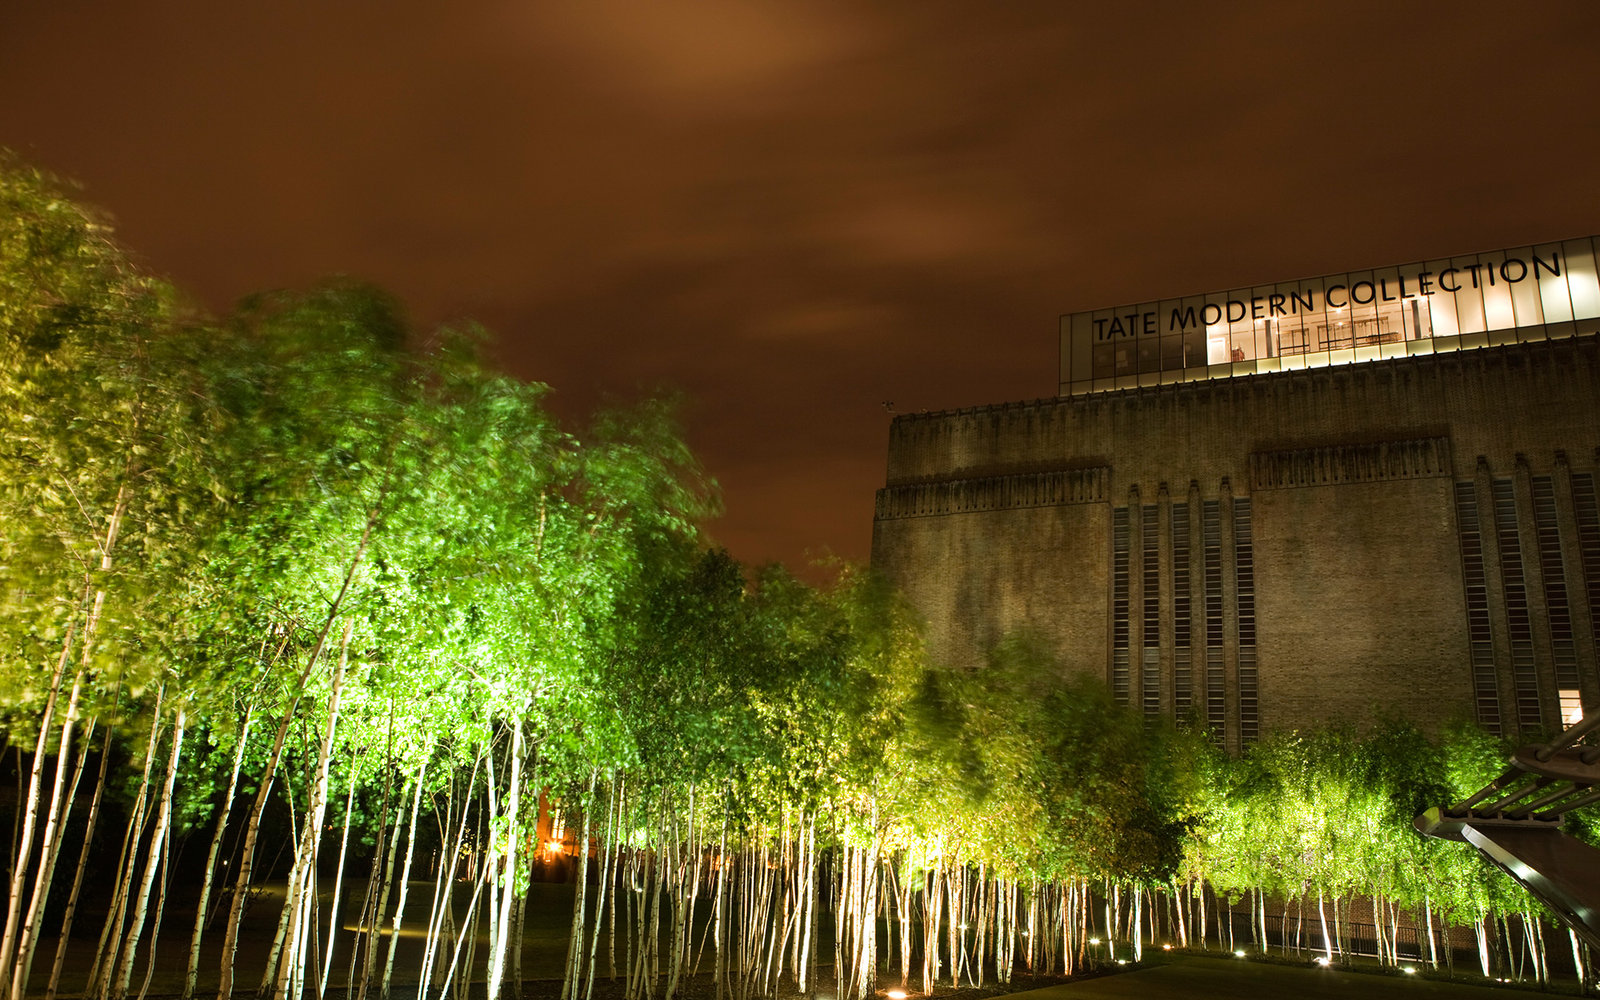 The Tate Modern at night.